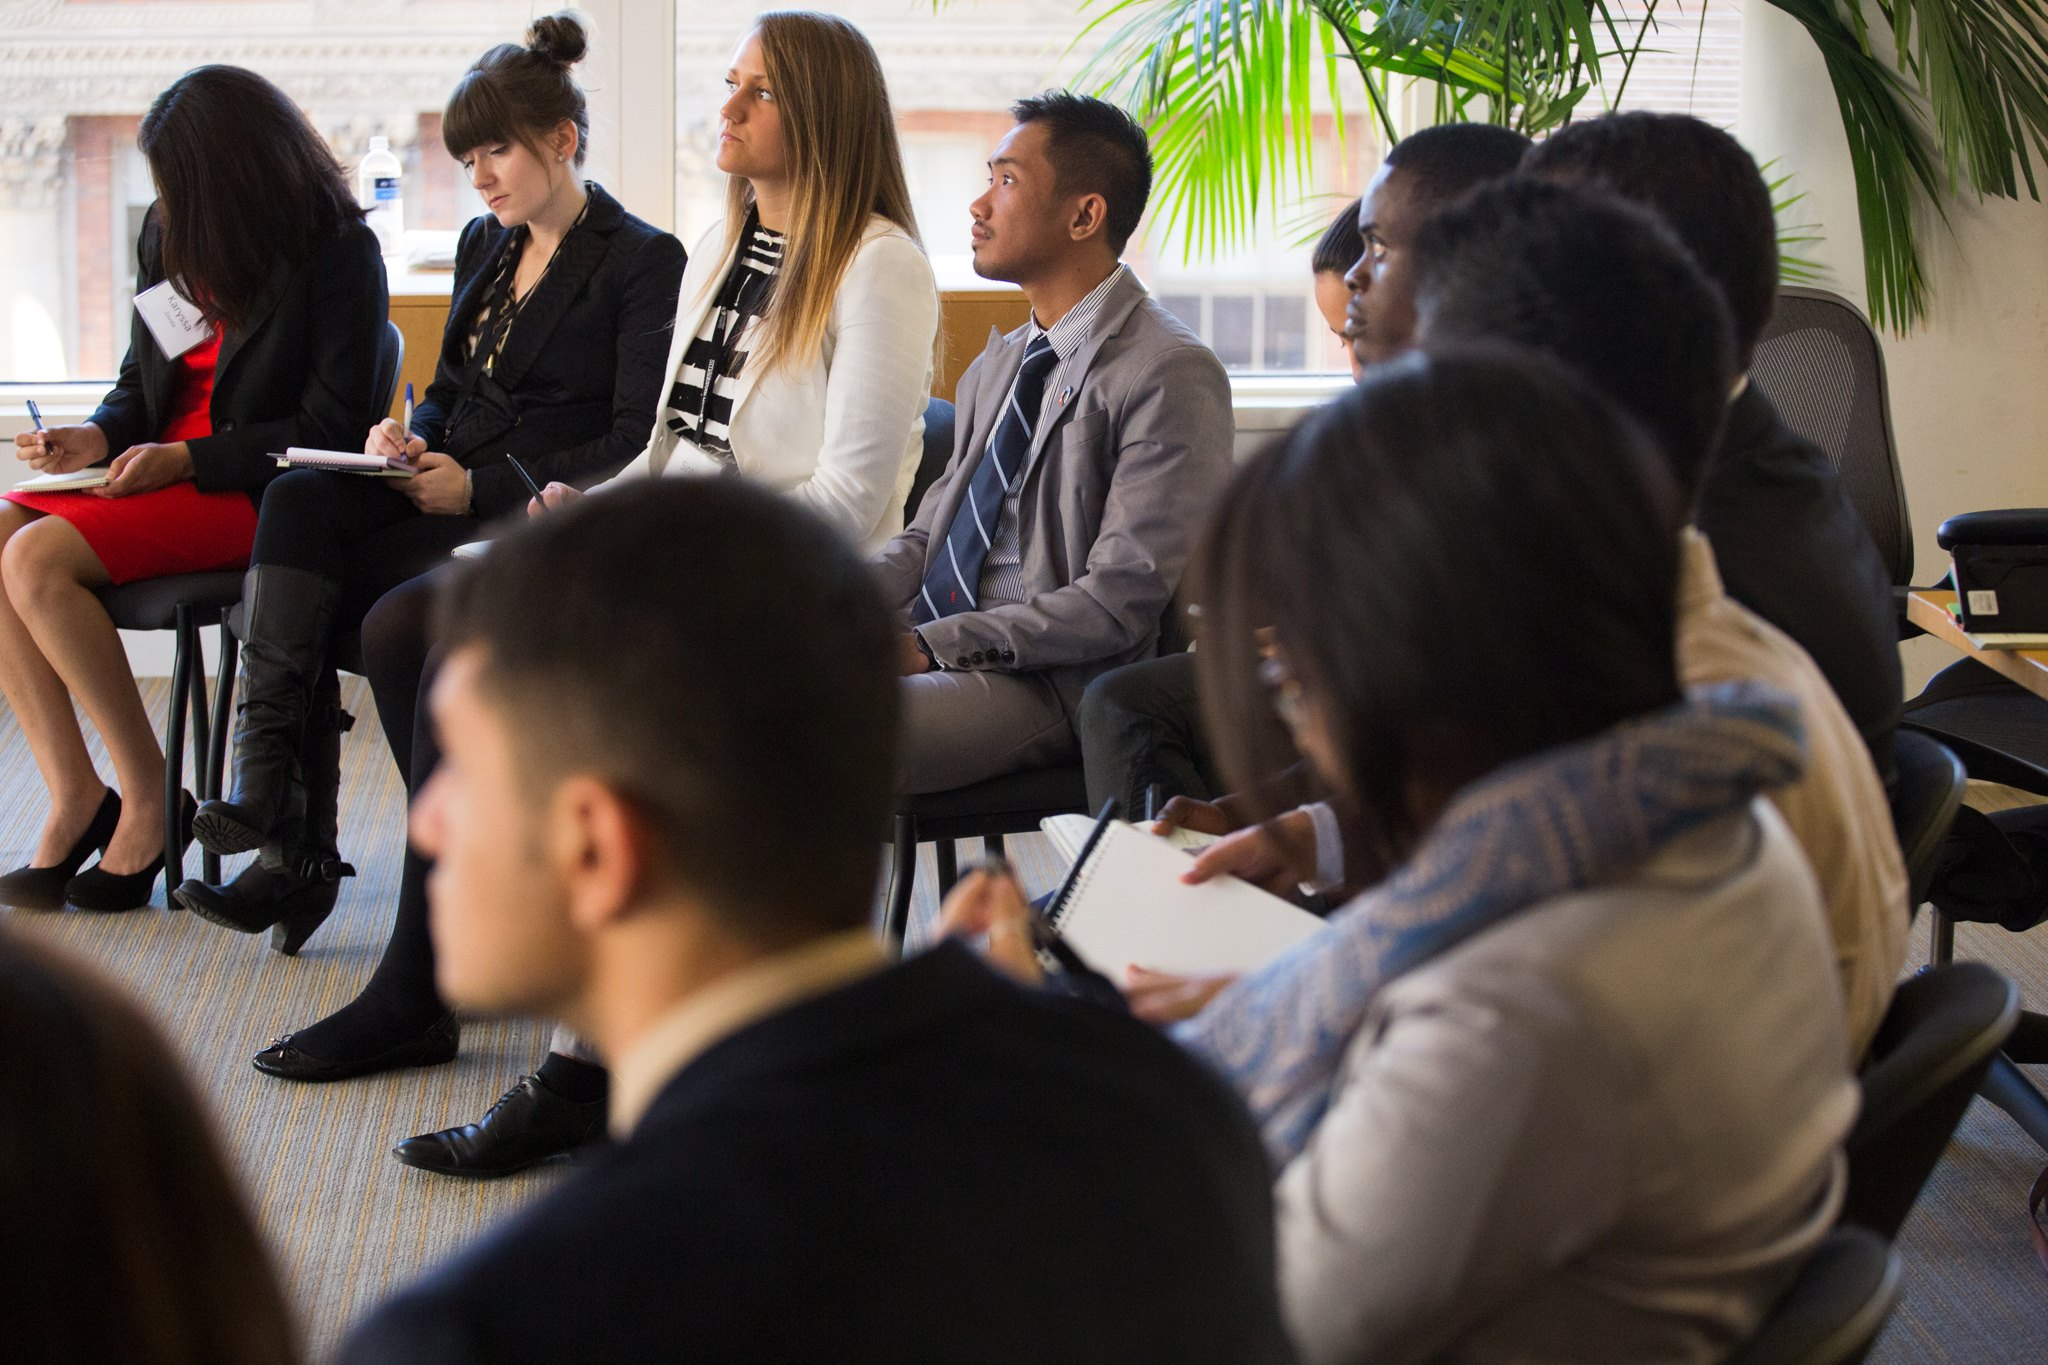 Millennial Work Trends - Marketing headlines have been aimed at Millennials in an effort to attract fast-paced digital natives. However, this focus on the consumer is not enough. To remain market leaders attracting top talent, companies need a new approach to both their business and their employees.